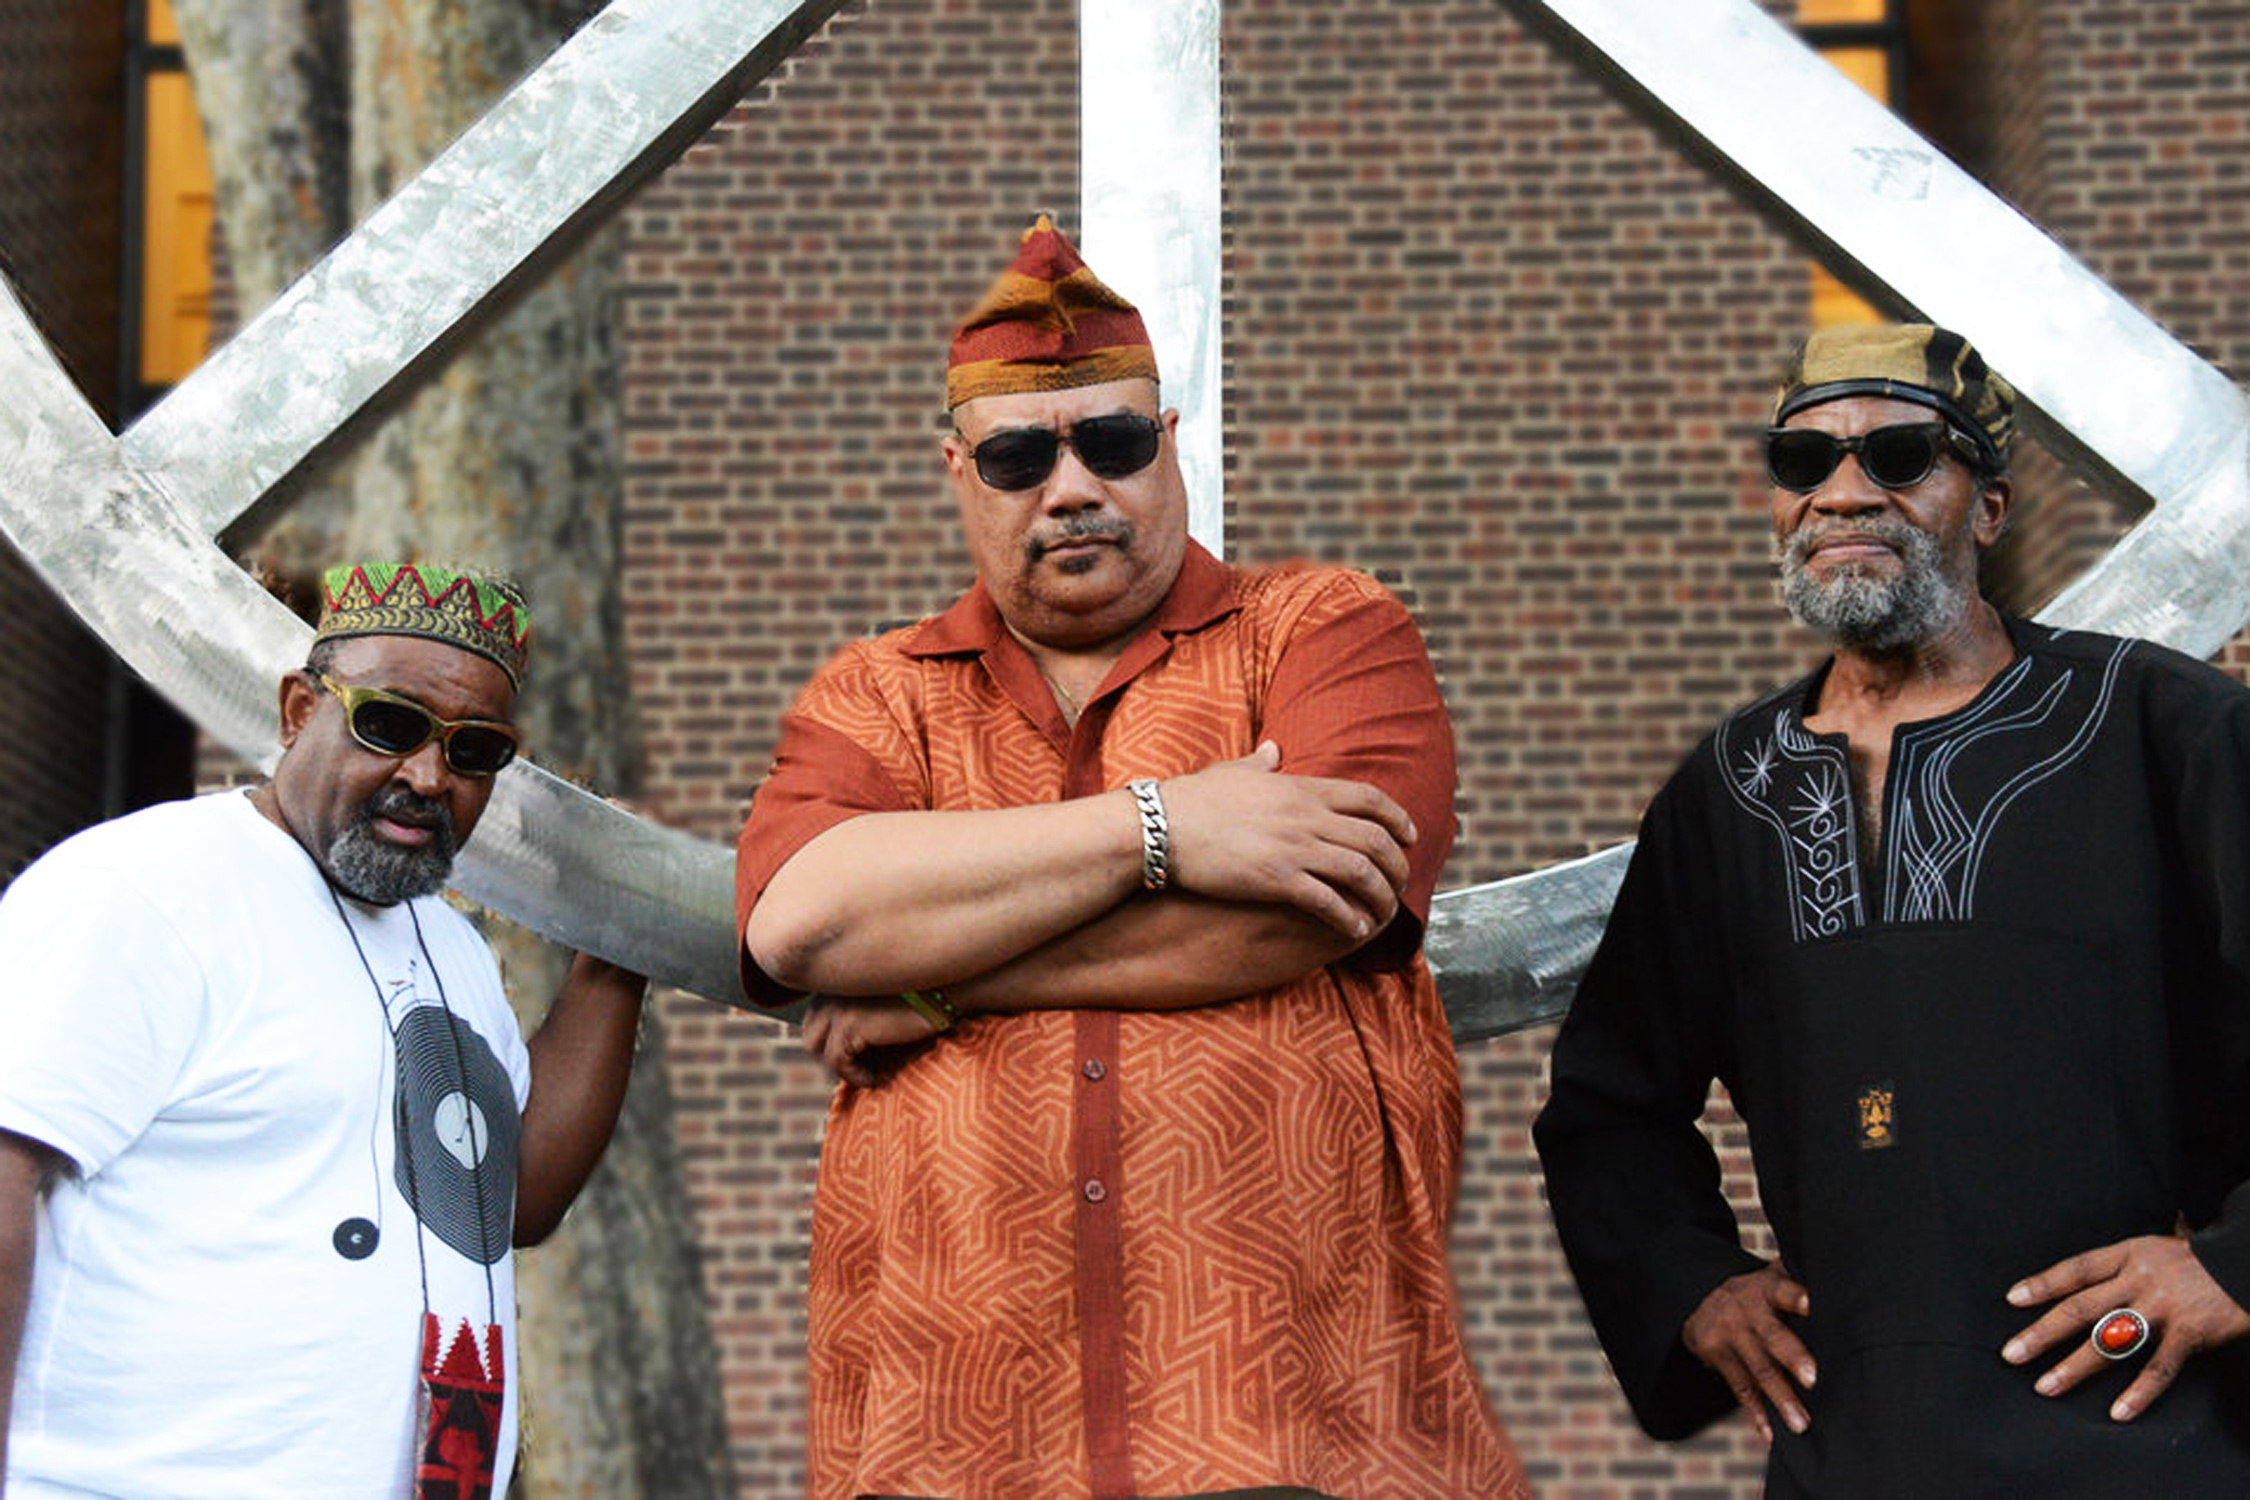 Hear the Last Poets' Sobering New Rallying Cry 'For the Millions'